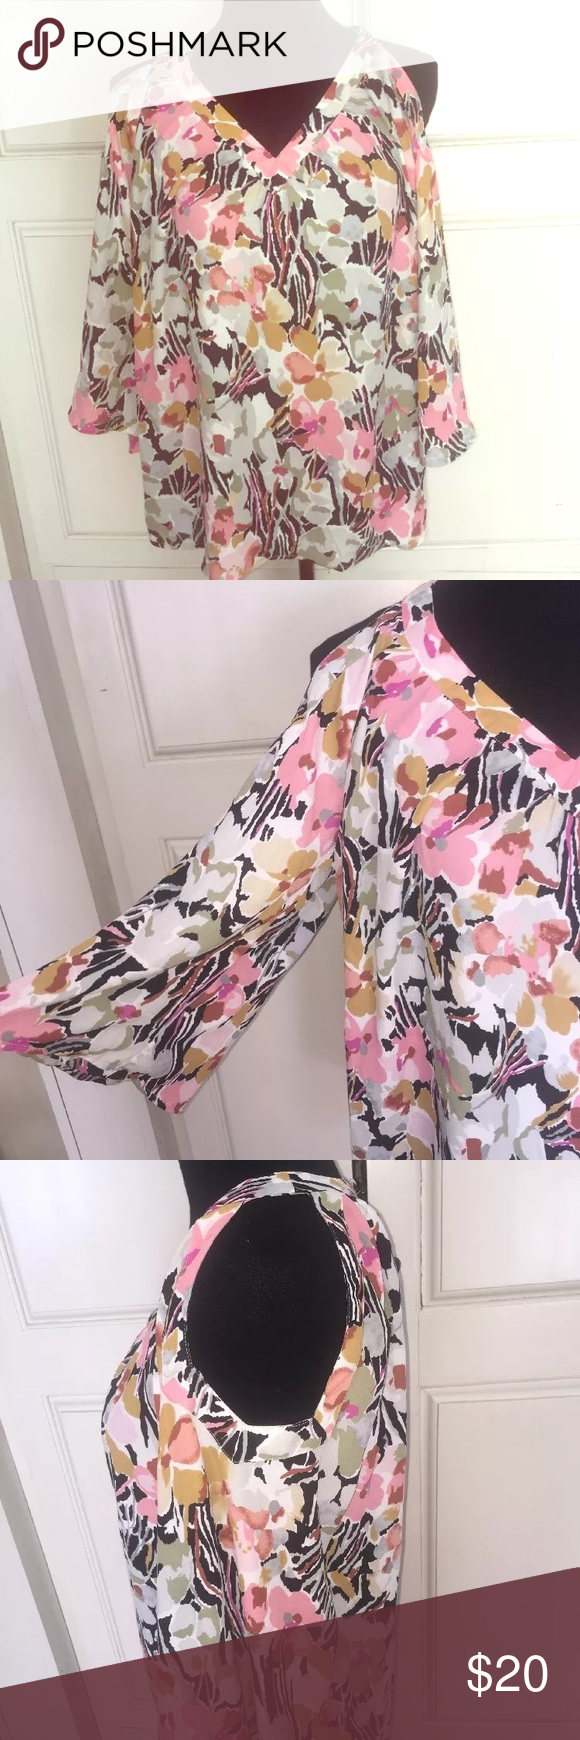 Rose & Thyme cold shoulder floral flutter sleeve Beautiful feminine modern top!  Striking cold shoulder with flutter bell sleeve.  Beautiful fabric. A true showstopper! Rose & Thyme Tops Blouses